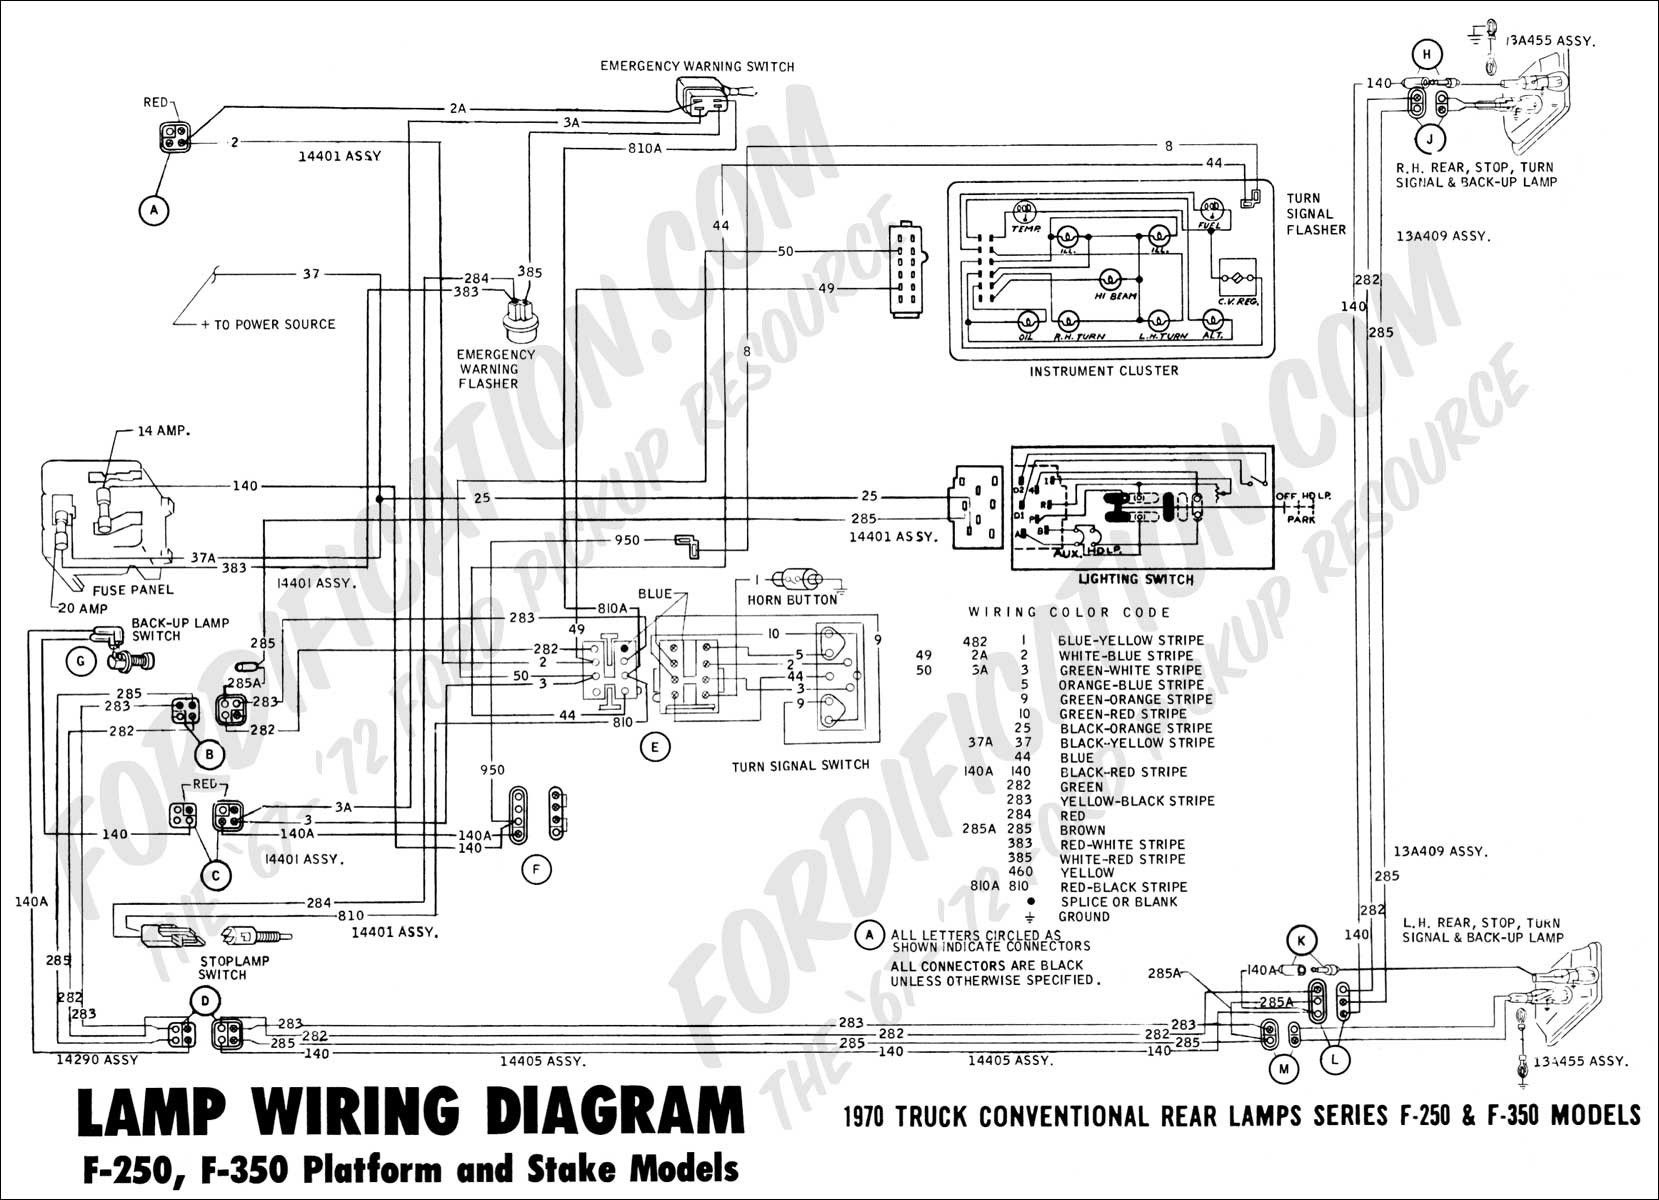 Ford F250 Wiring Diagram For Trailer Light Bookingritzcarlton Info Ford F250 Diagram Ford Lightning